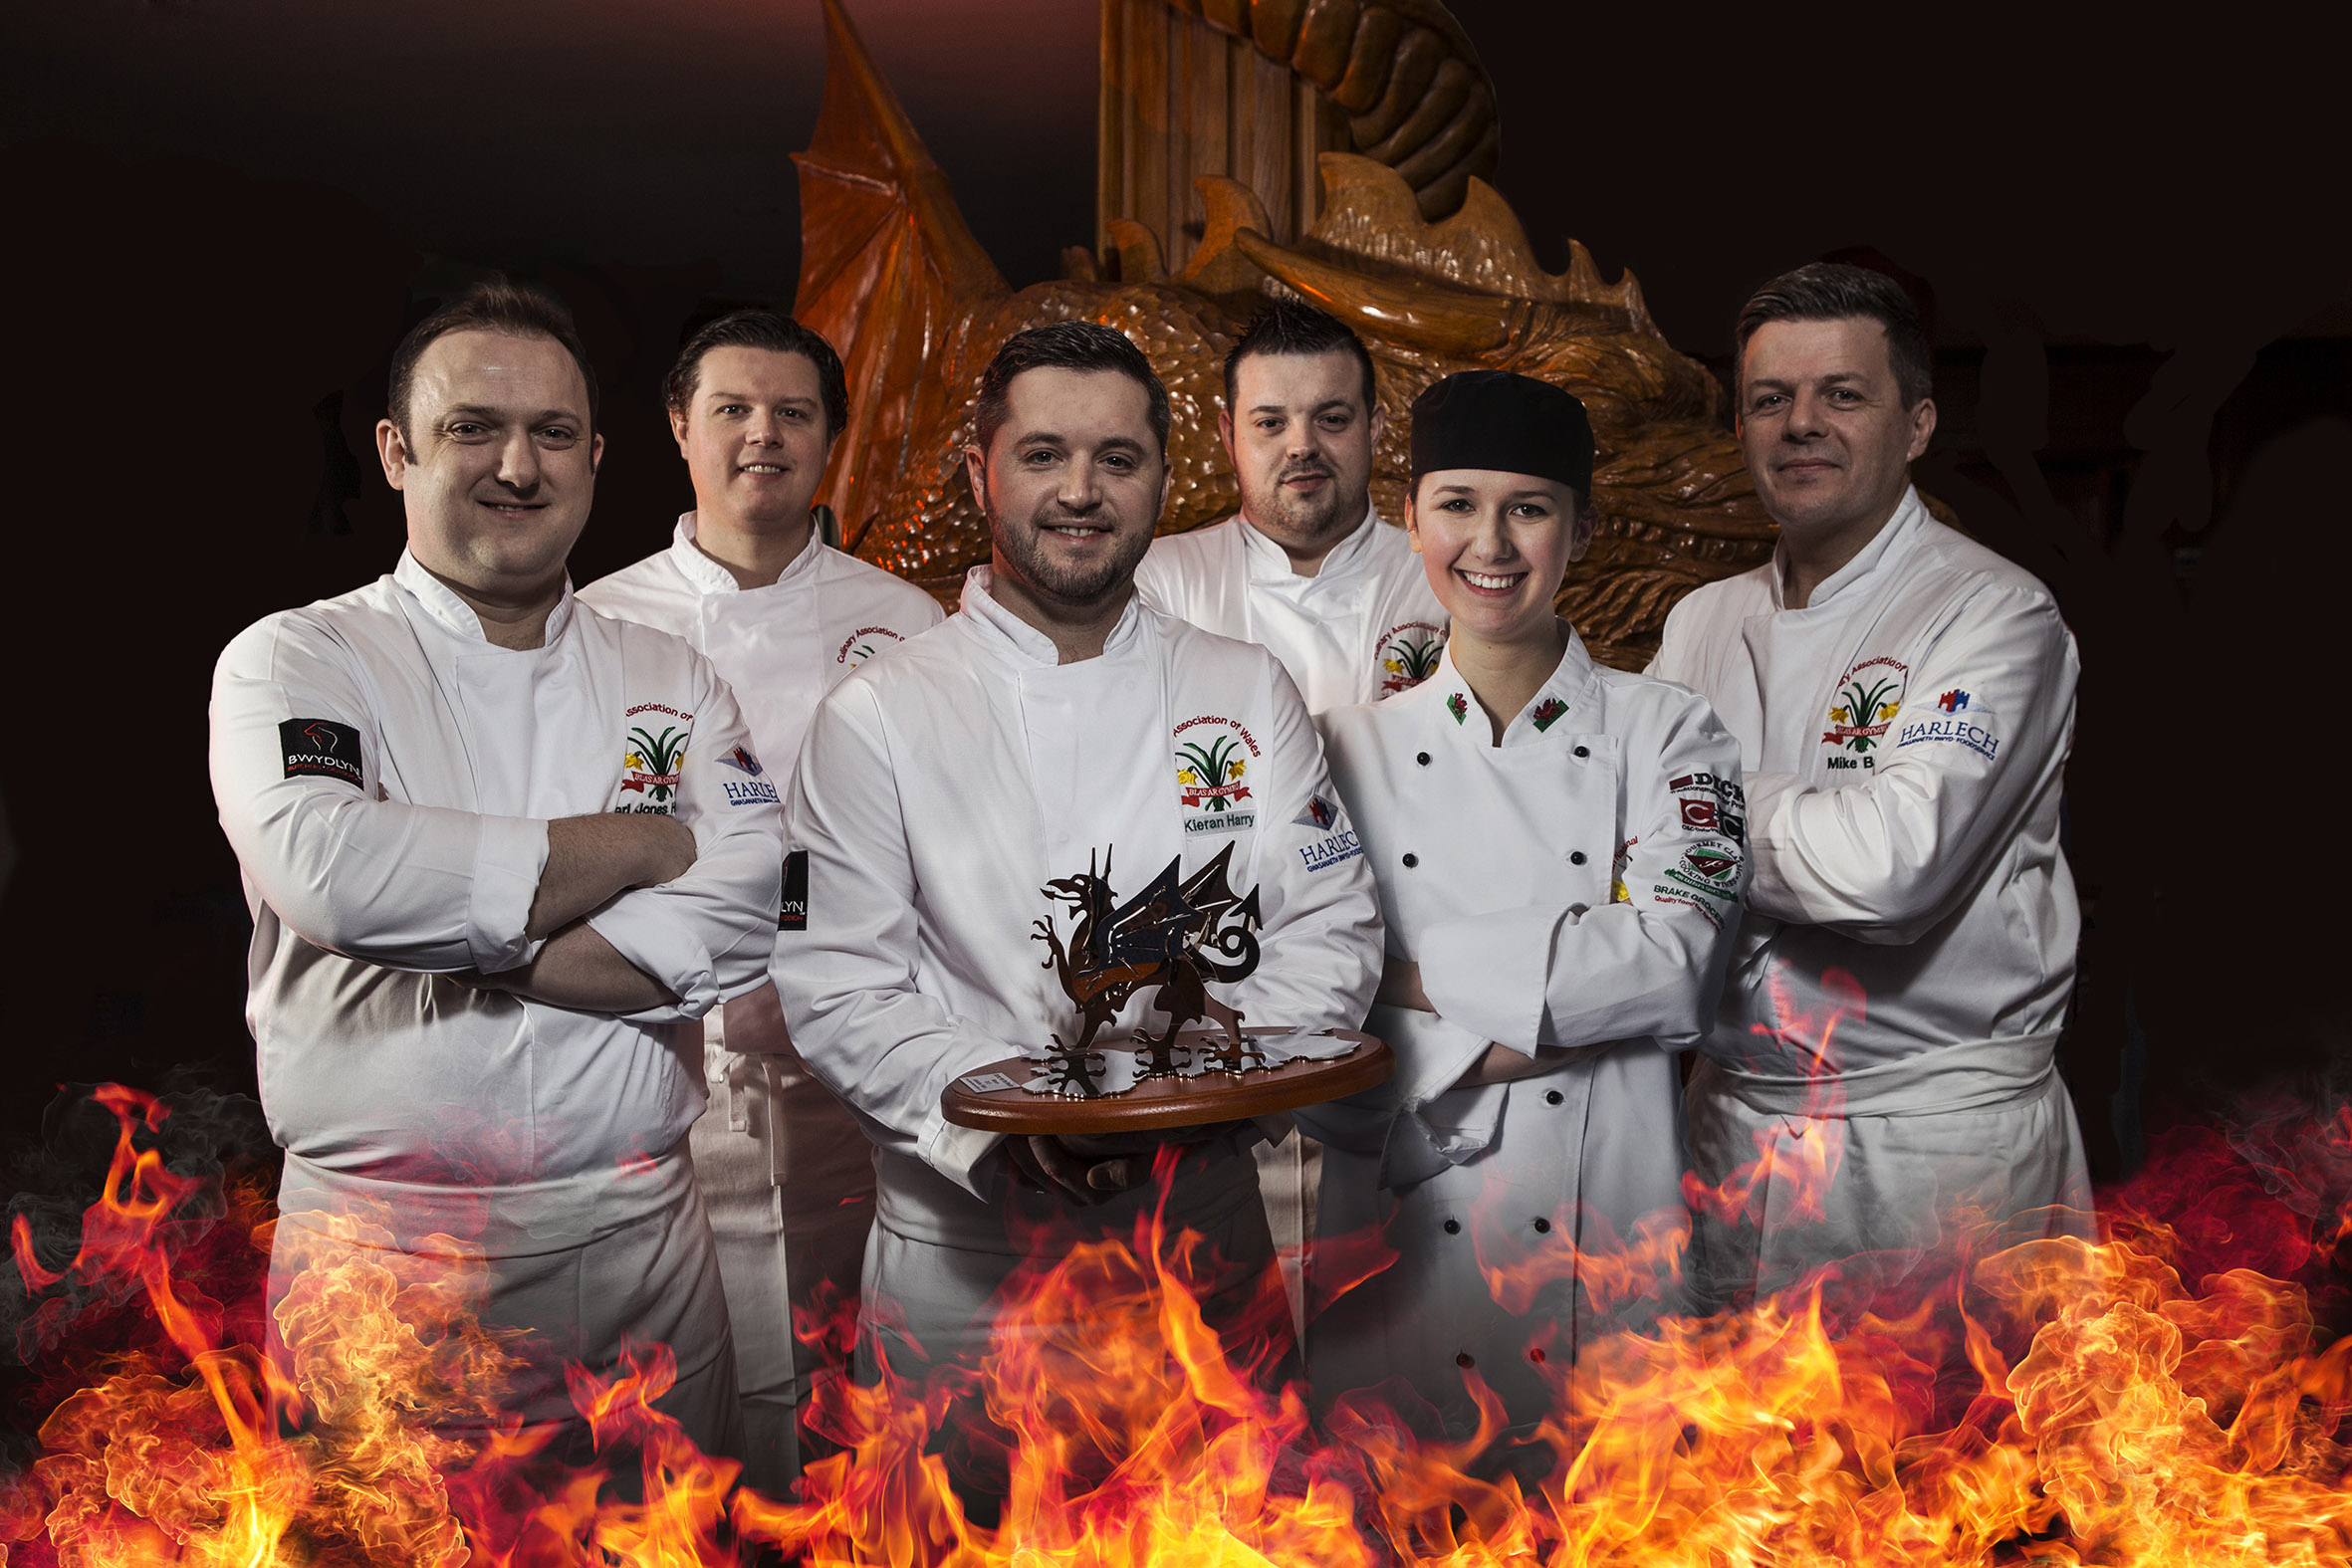 The winning South Wales team with the Battle for the Dragon trophy.